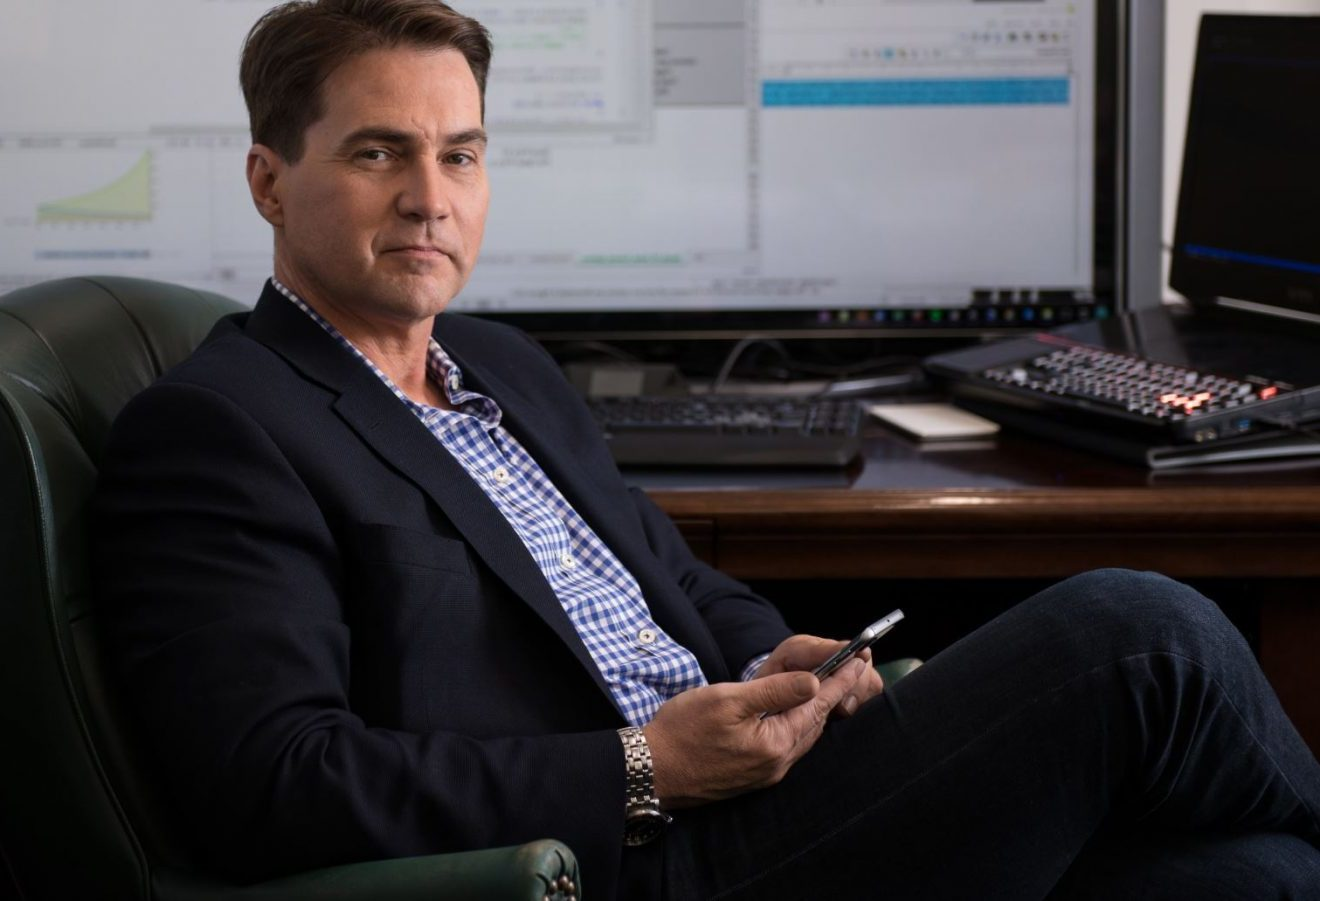 Craig Wright Claims Present Versions of BTC And BCH Used His Database Without Authority